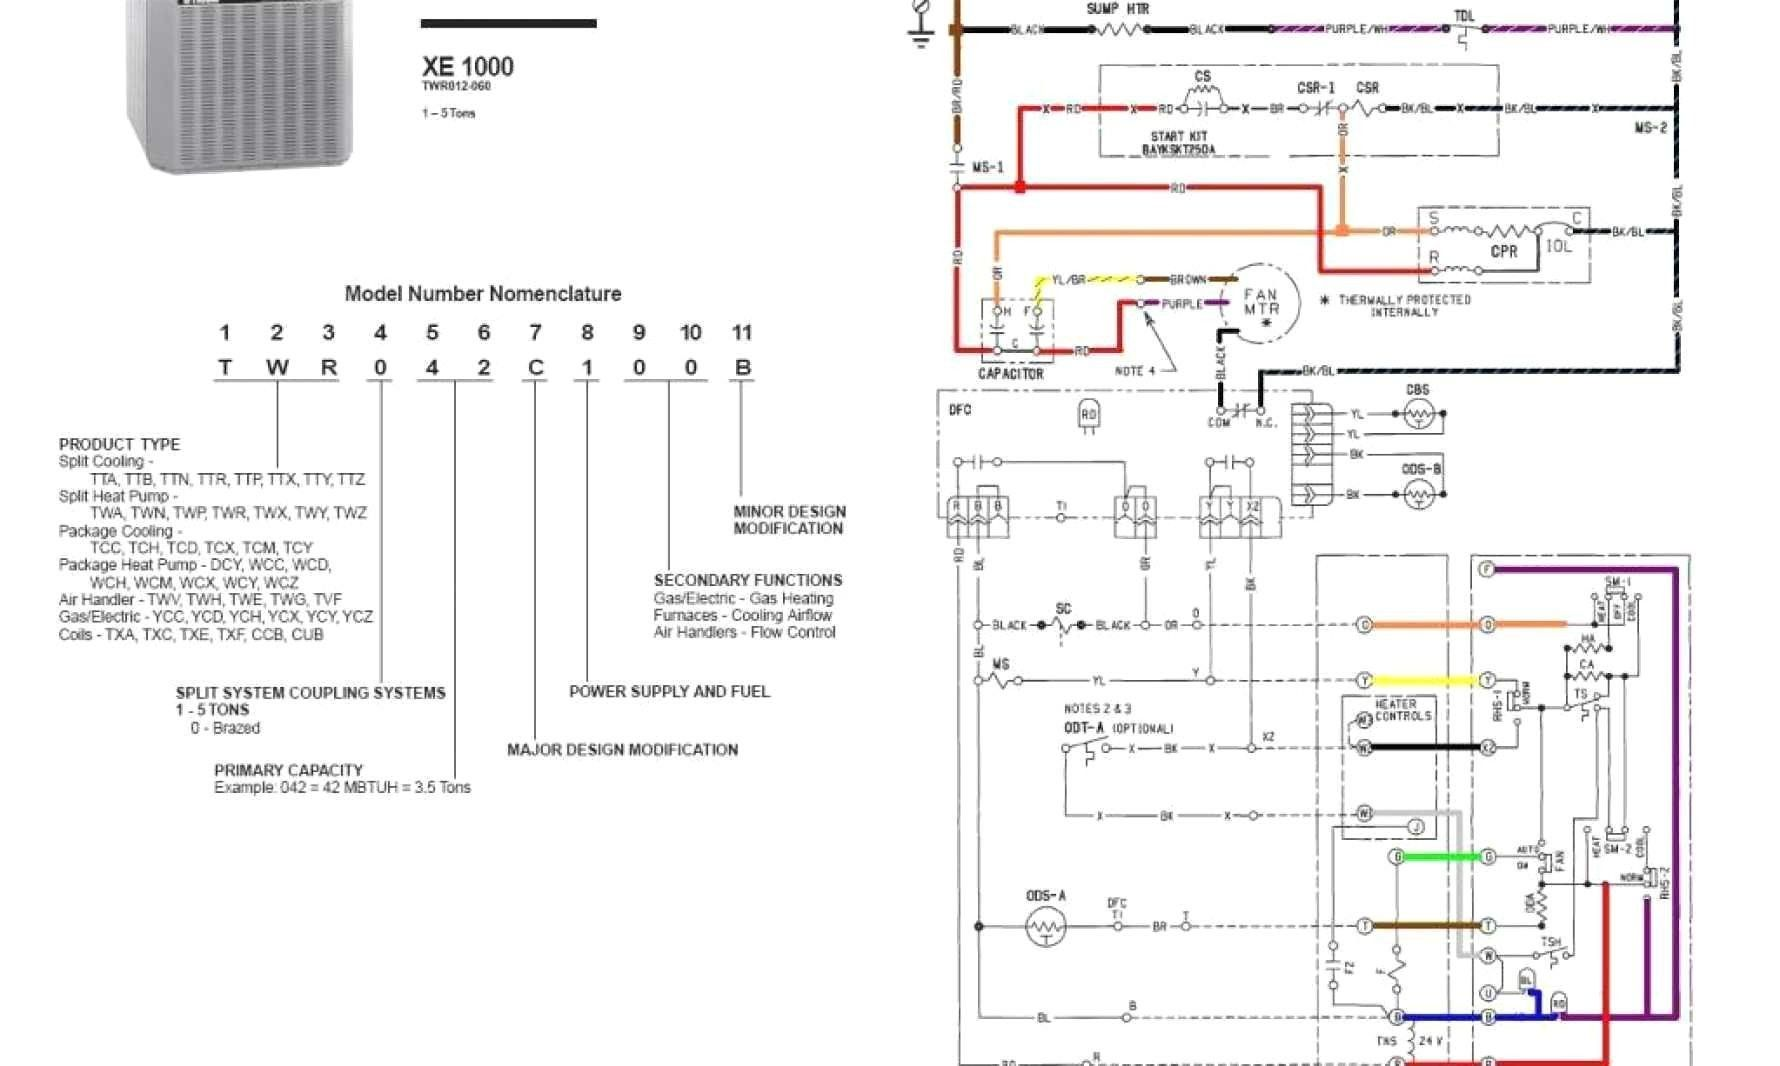 trane thermostat wiring wiring diagramtrane thermostat wiring diagram luxury wiring diagram for trane withtrane thermostat wiring diagram luxury wiring diagram